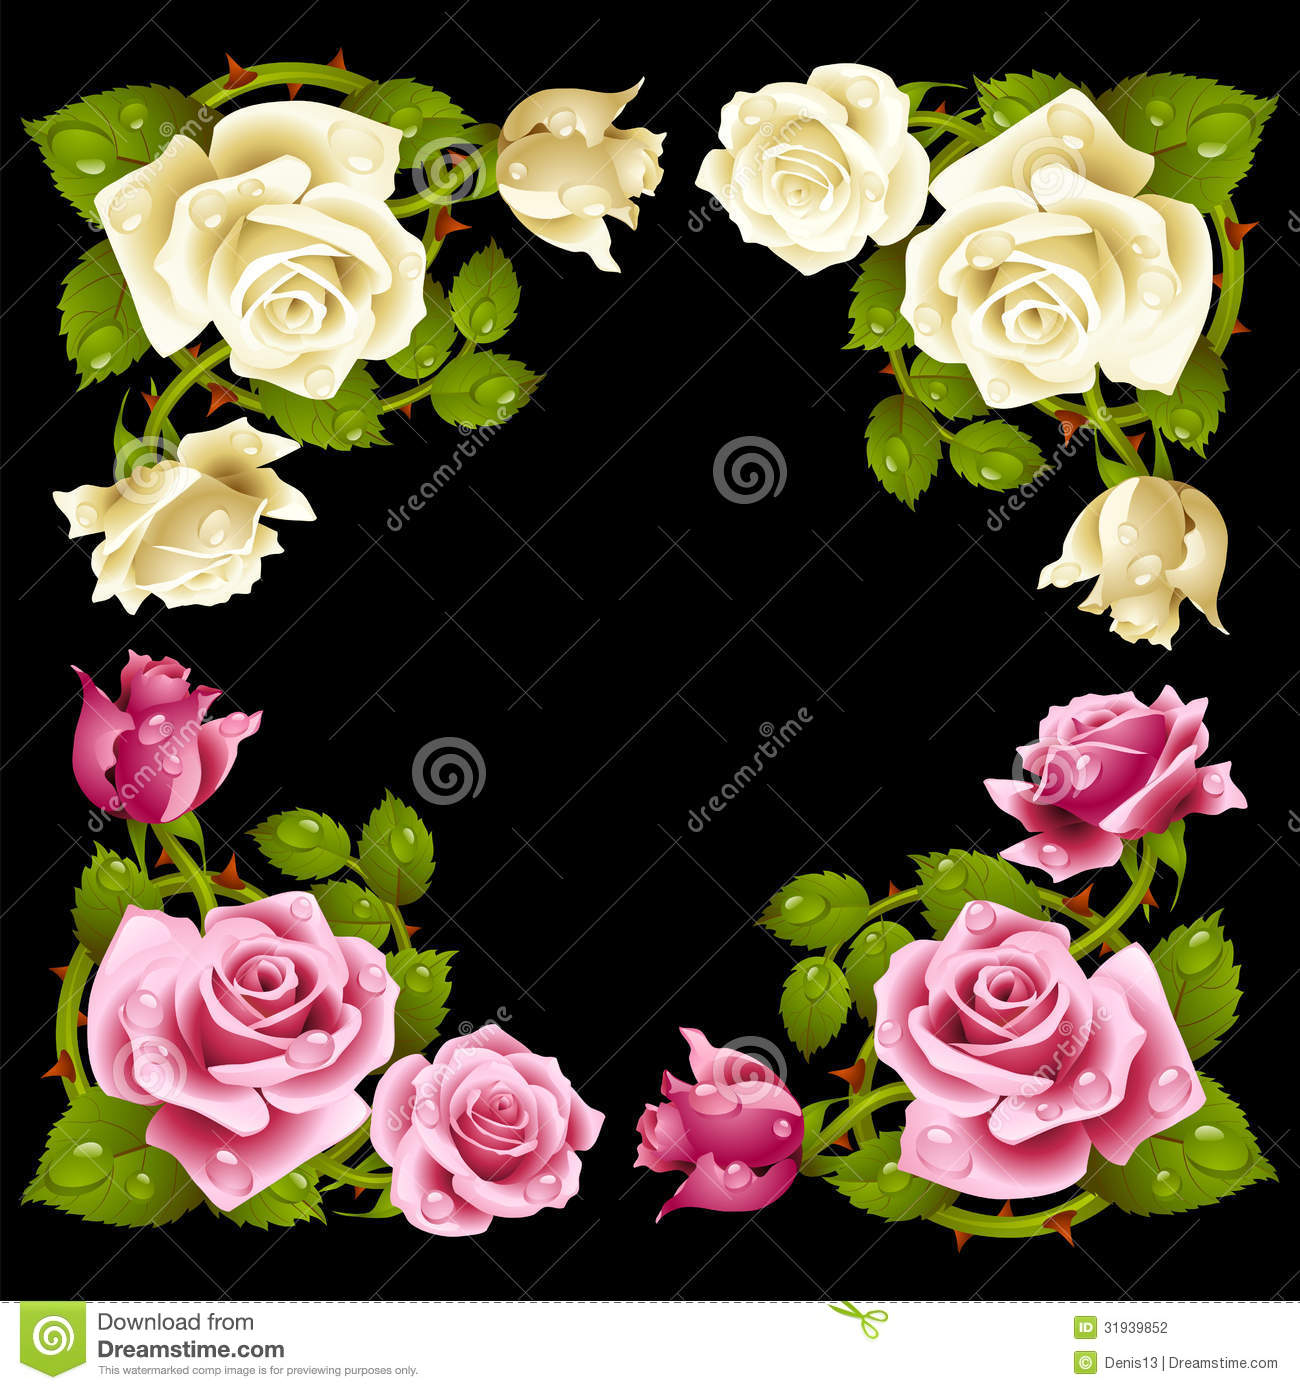 Vector rose corner isolated on black background stock photography background black corner flowers isolated pink rose white dhlflorist Choice Image